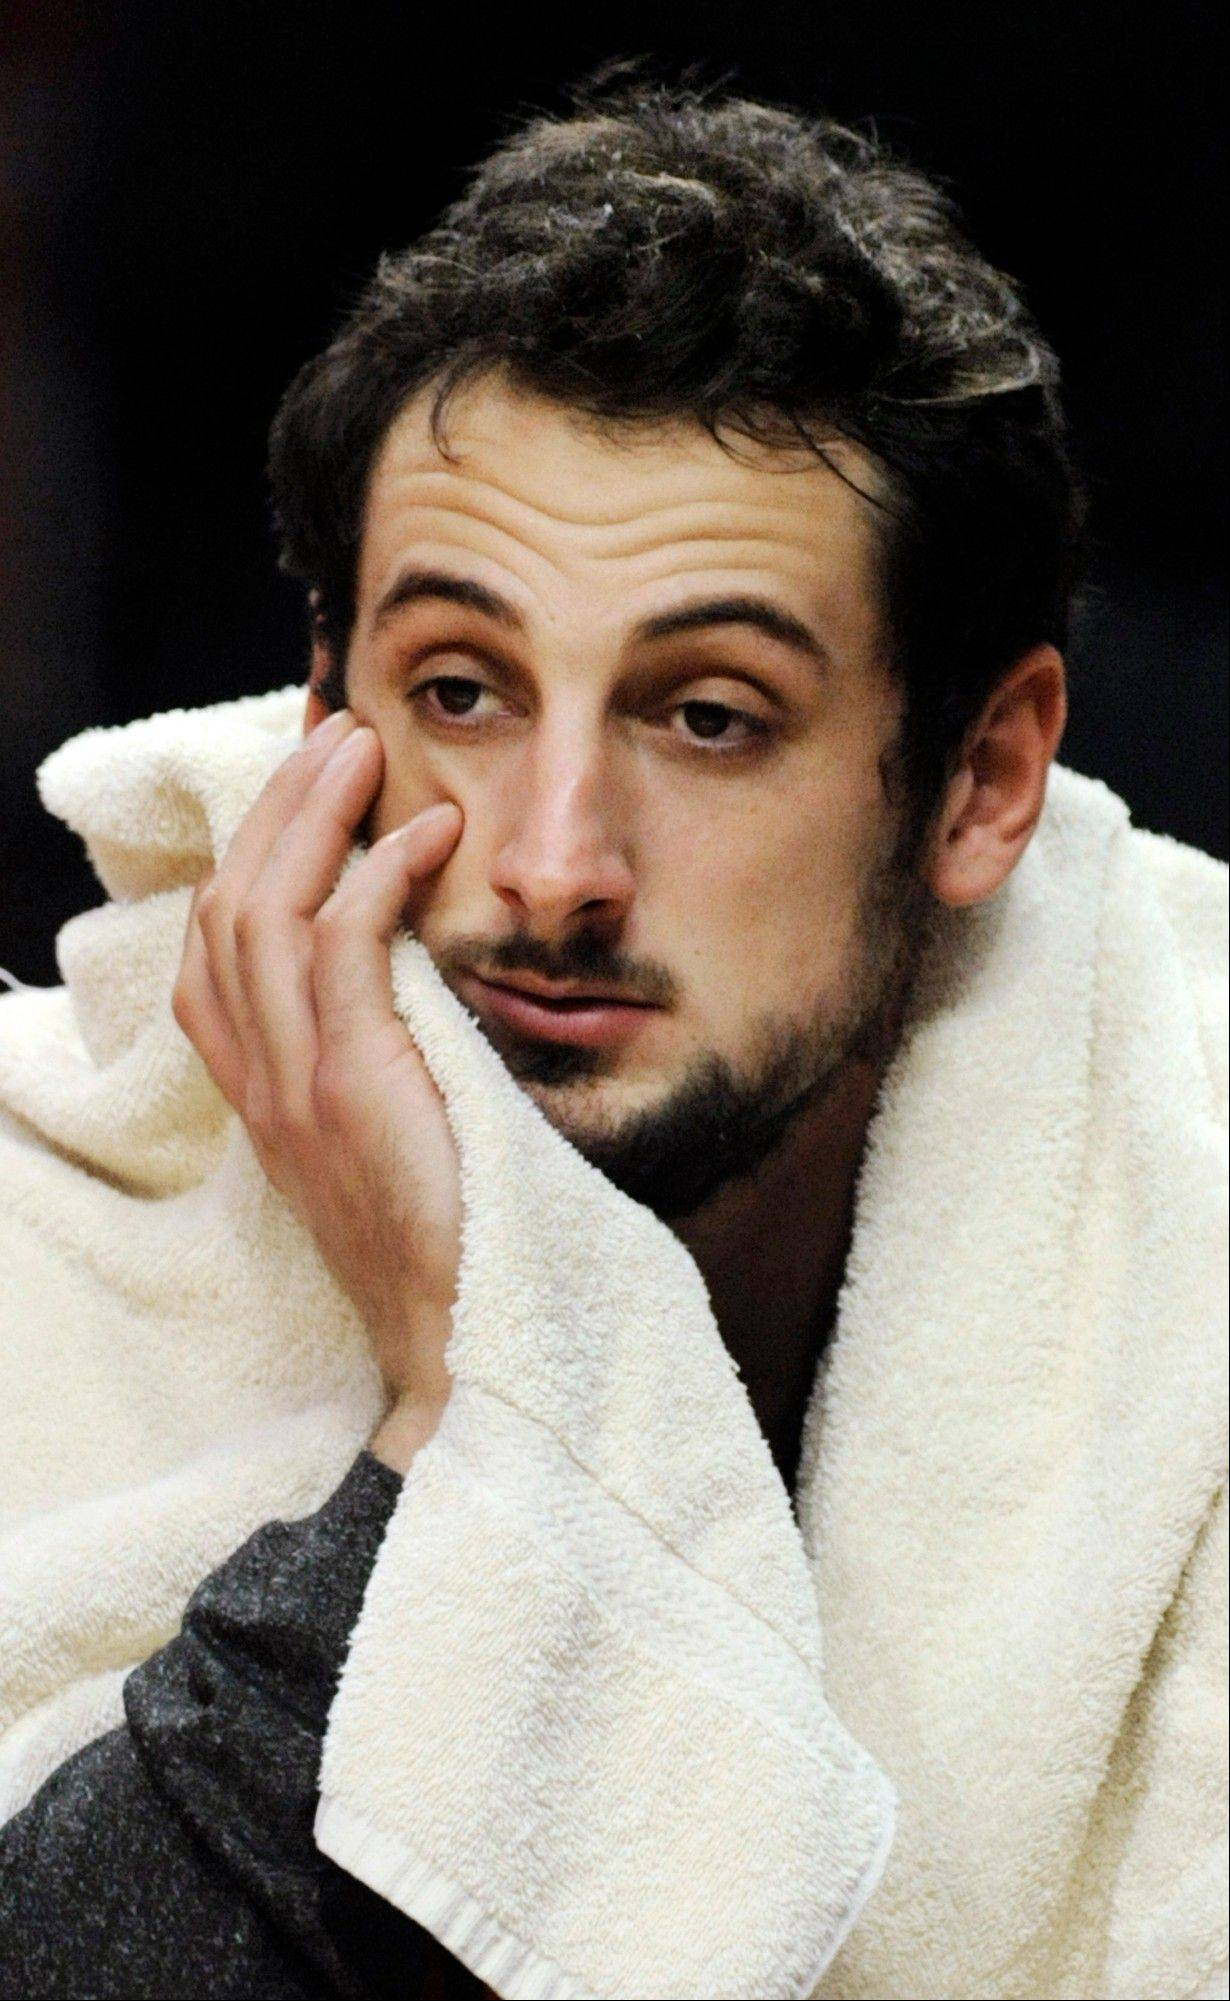 The Bulls' Marco Belinelli watches from the bench Tuesday during the final seconds of the fourth quarter against the Houston Rockets at the United Center. Houston won 120-97.